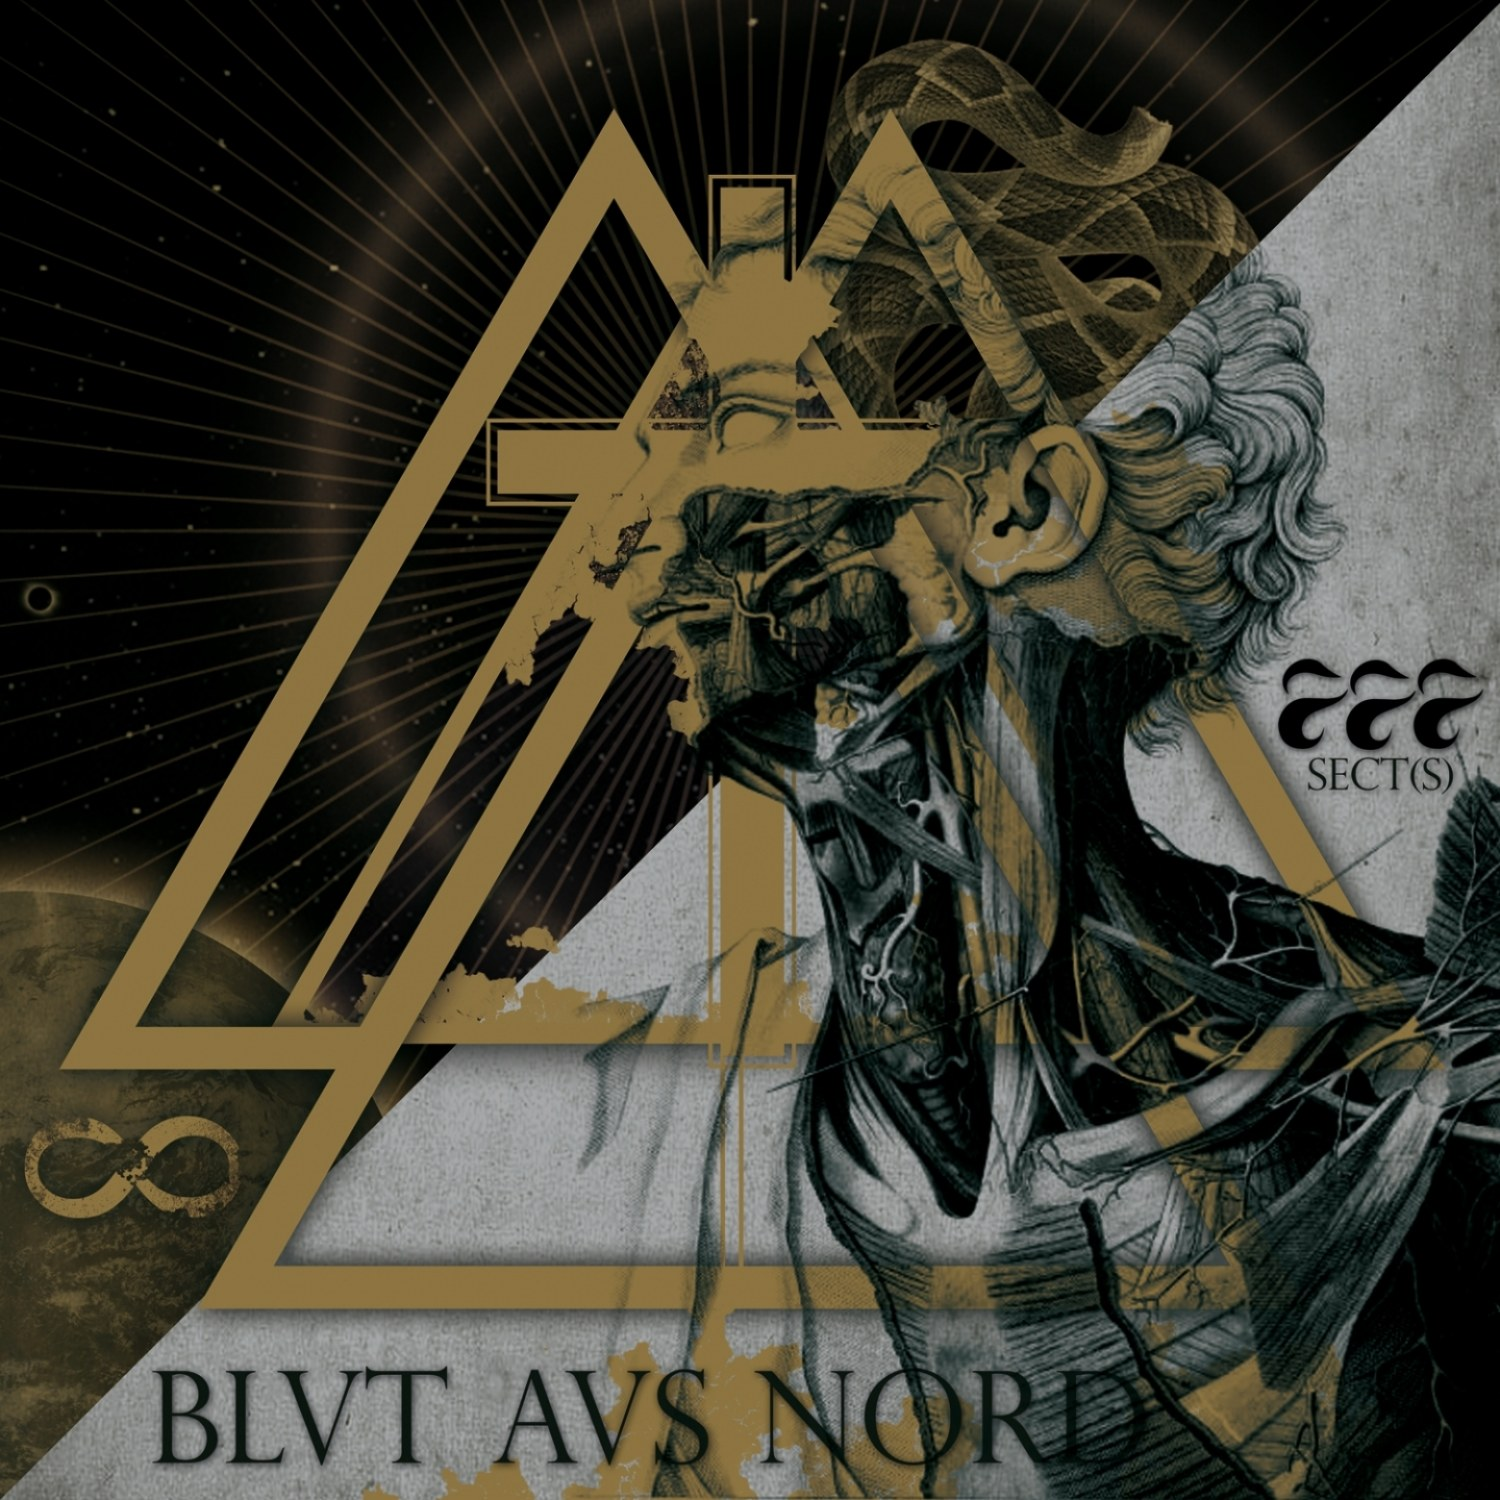 Review for Blut Aus Nord - 777 (Sects)